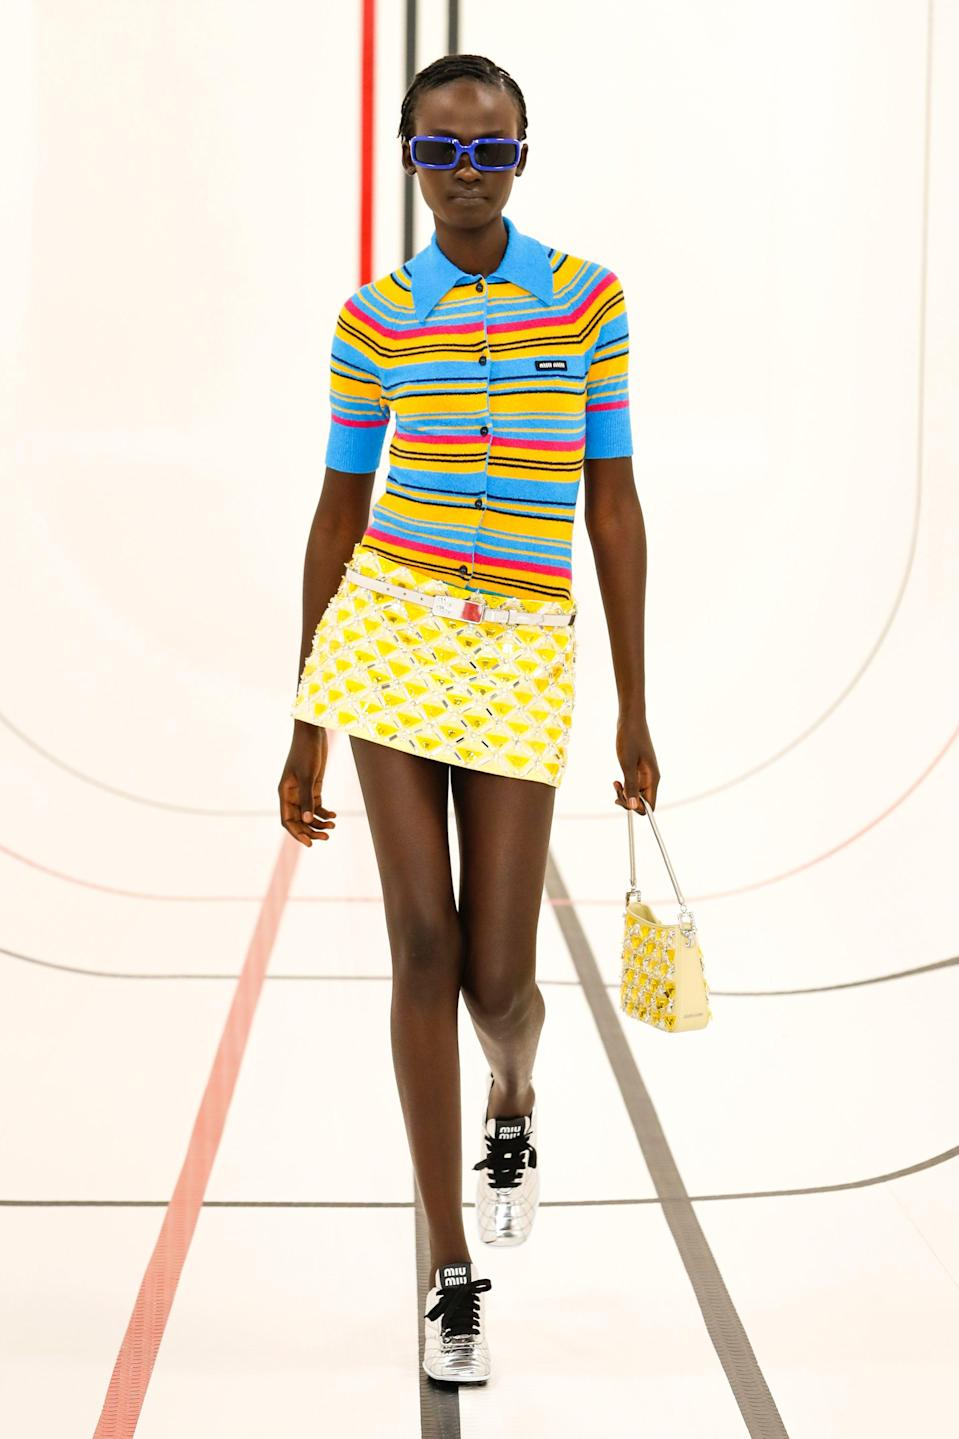 "<h2>Micro-Minis</h2><br>Mrs Prada continued to fight against bulky, layered-on fashion with the reintroduction of micro-mini skirts and -dresses at her Miu Miu show. And like the equally revealing midriff-baring tops, minis were popular across the board, with ultra-short bottoms also presented at Giambattista Valli, Hermes, Isabel Marant, and Coperni, among others. You heard it here first: 2021 will be known as the year of the gams. <br><br><em>Miu Miu</em><span class=""copyright"">Photo Courtesy of Miu Miu.</span>"